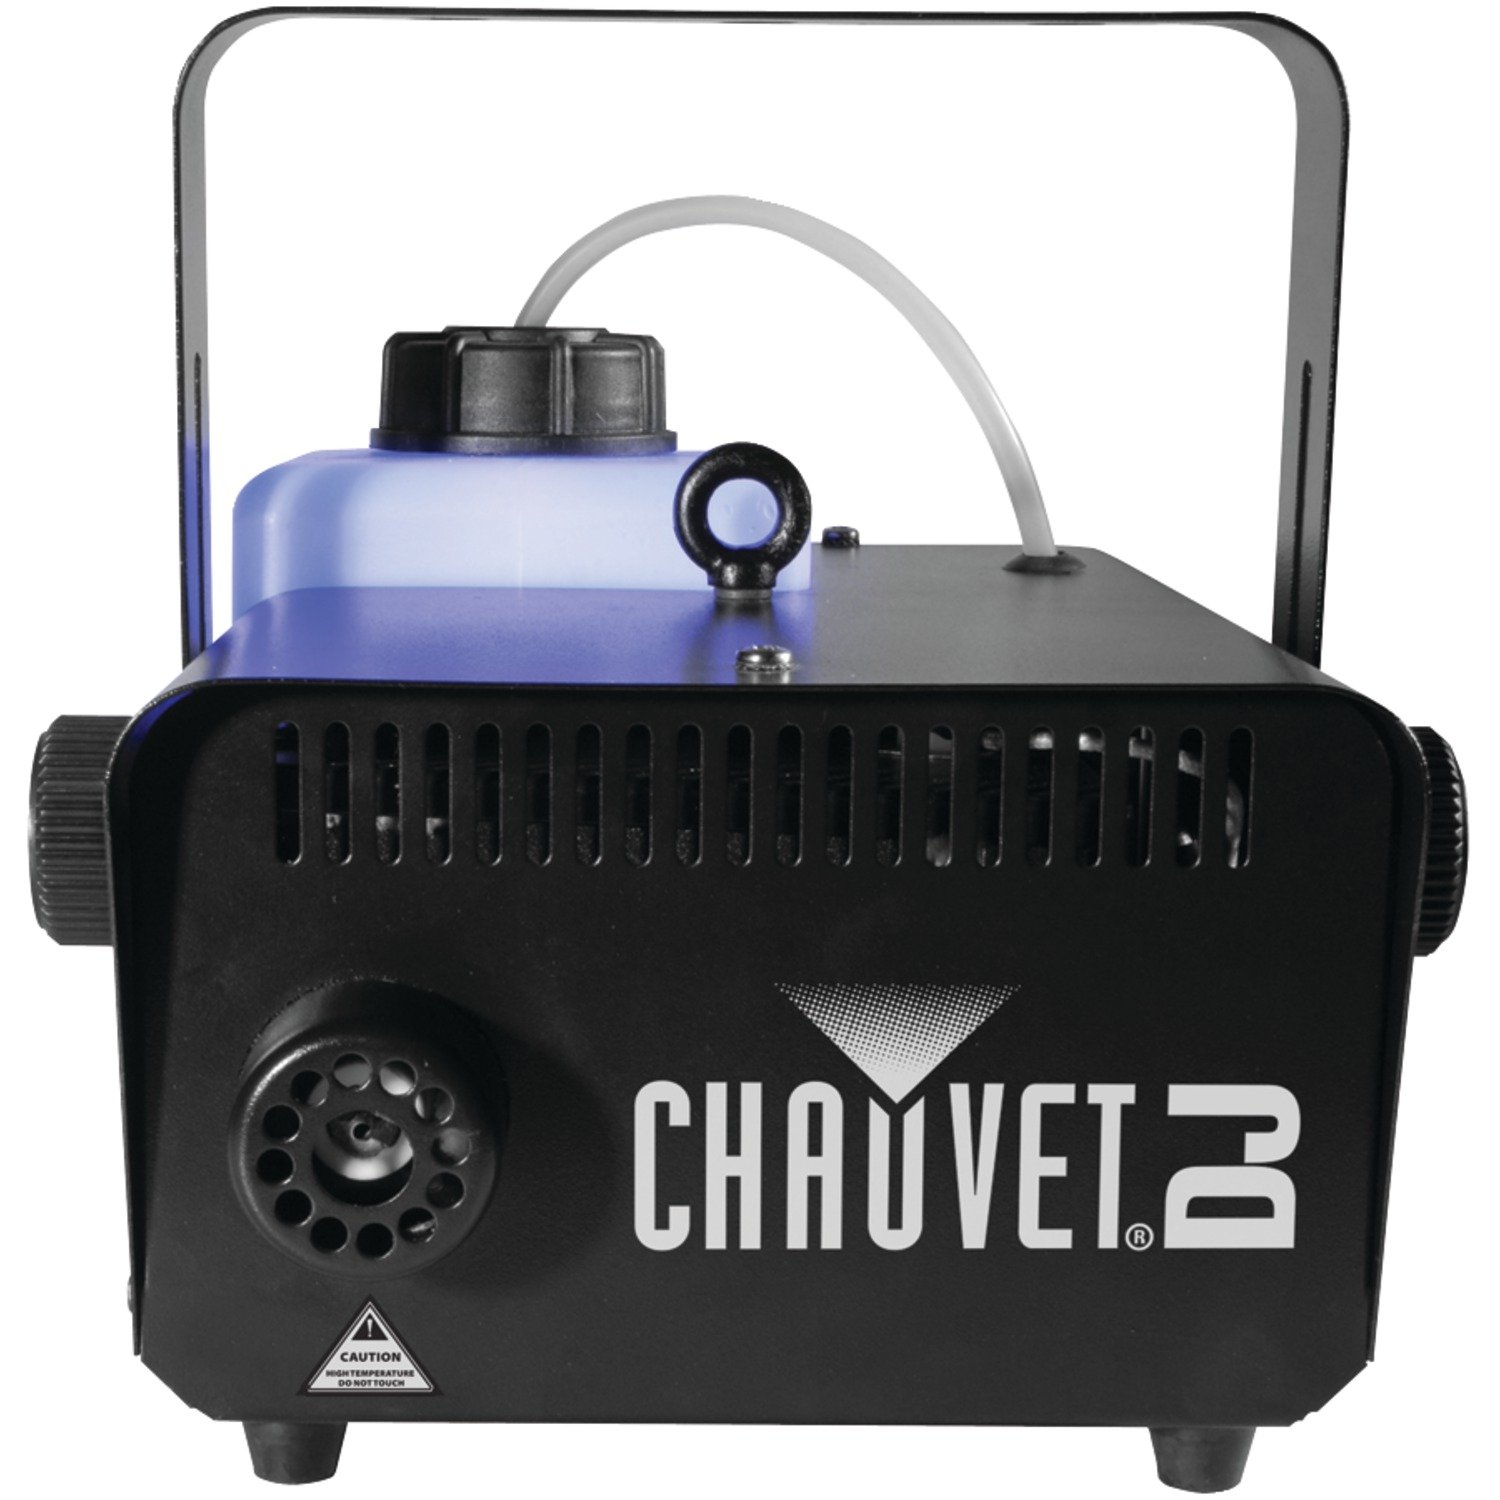 Top 7 best low lying fog machine for halloween reviews in ...